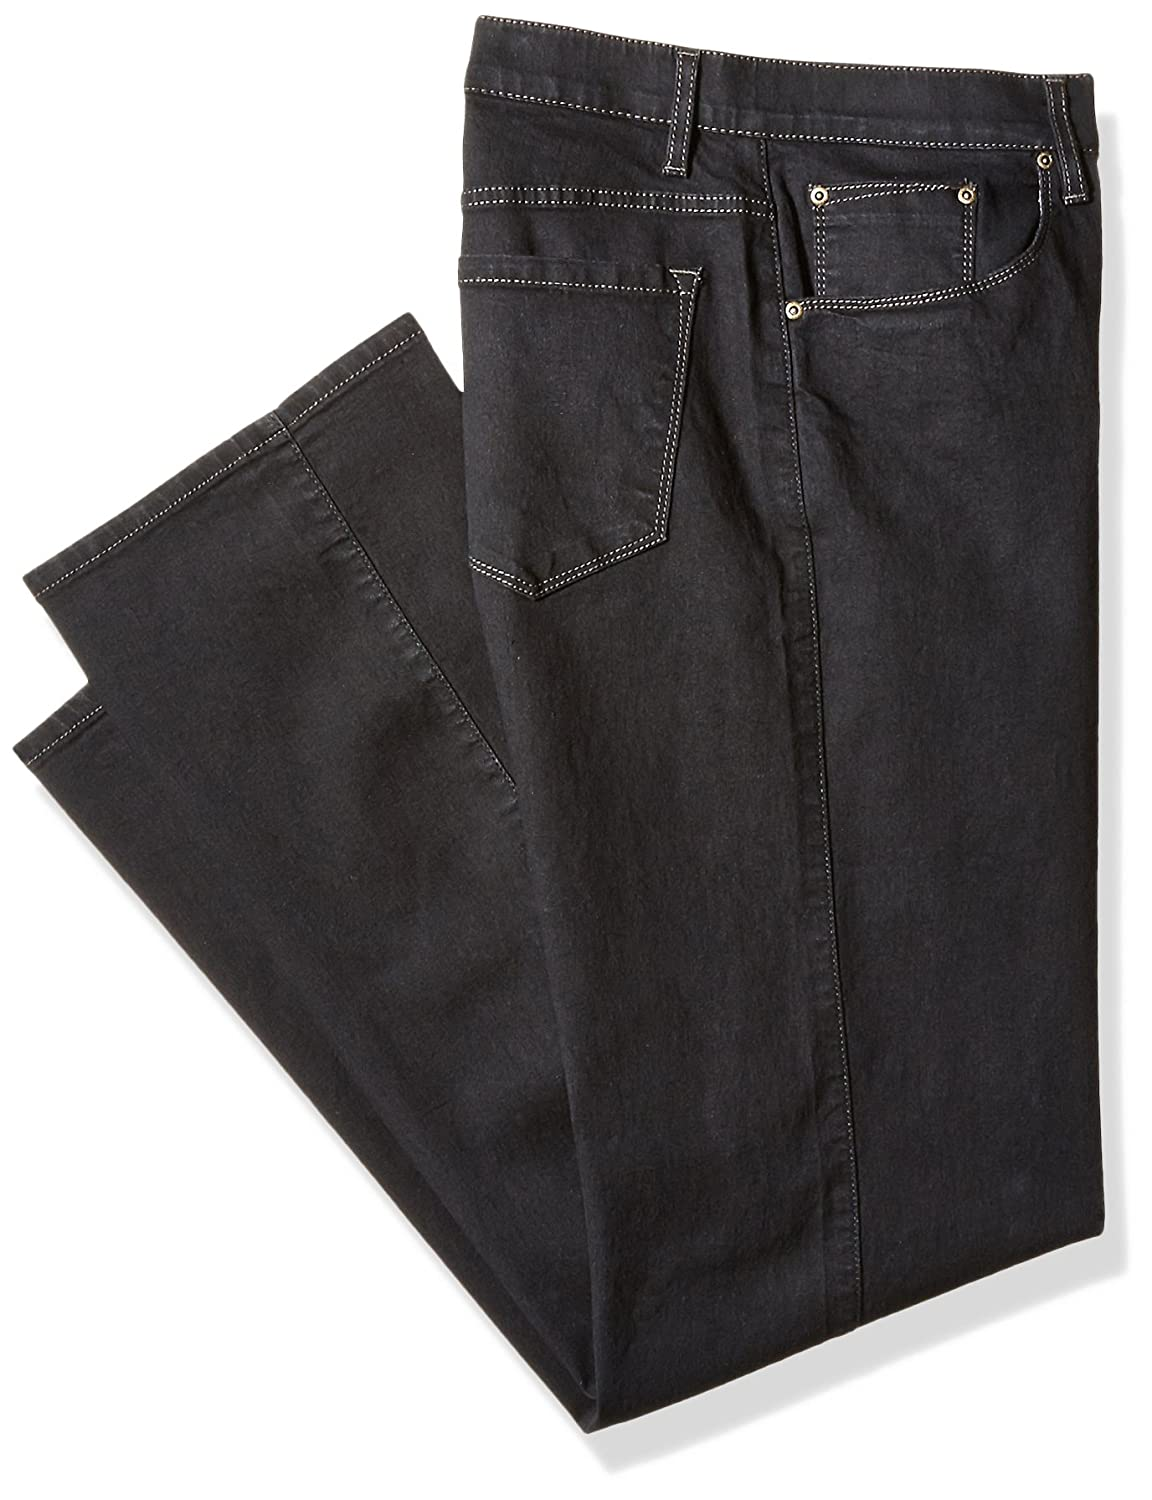 Savane Men's Big Tall Flat Front Active Flex Stretch Denim Savane Men's Bottoms